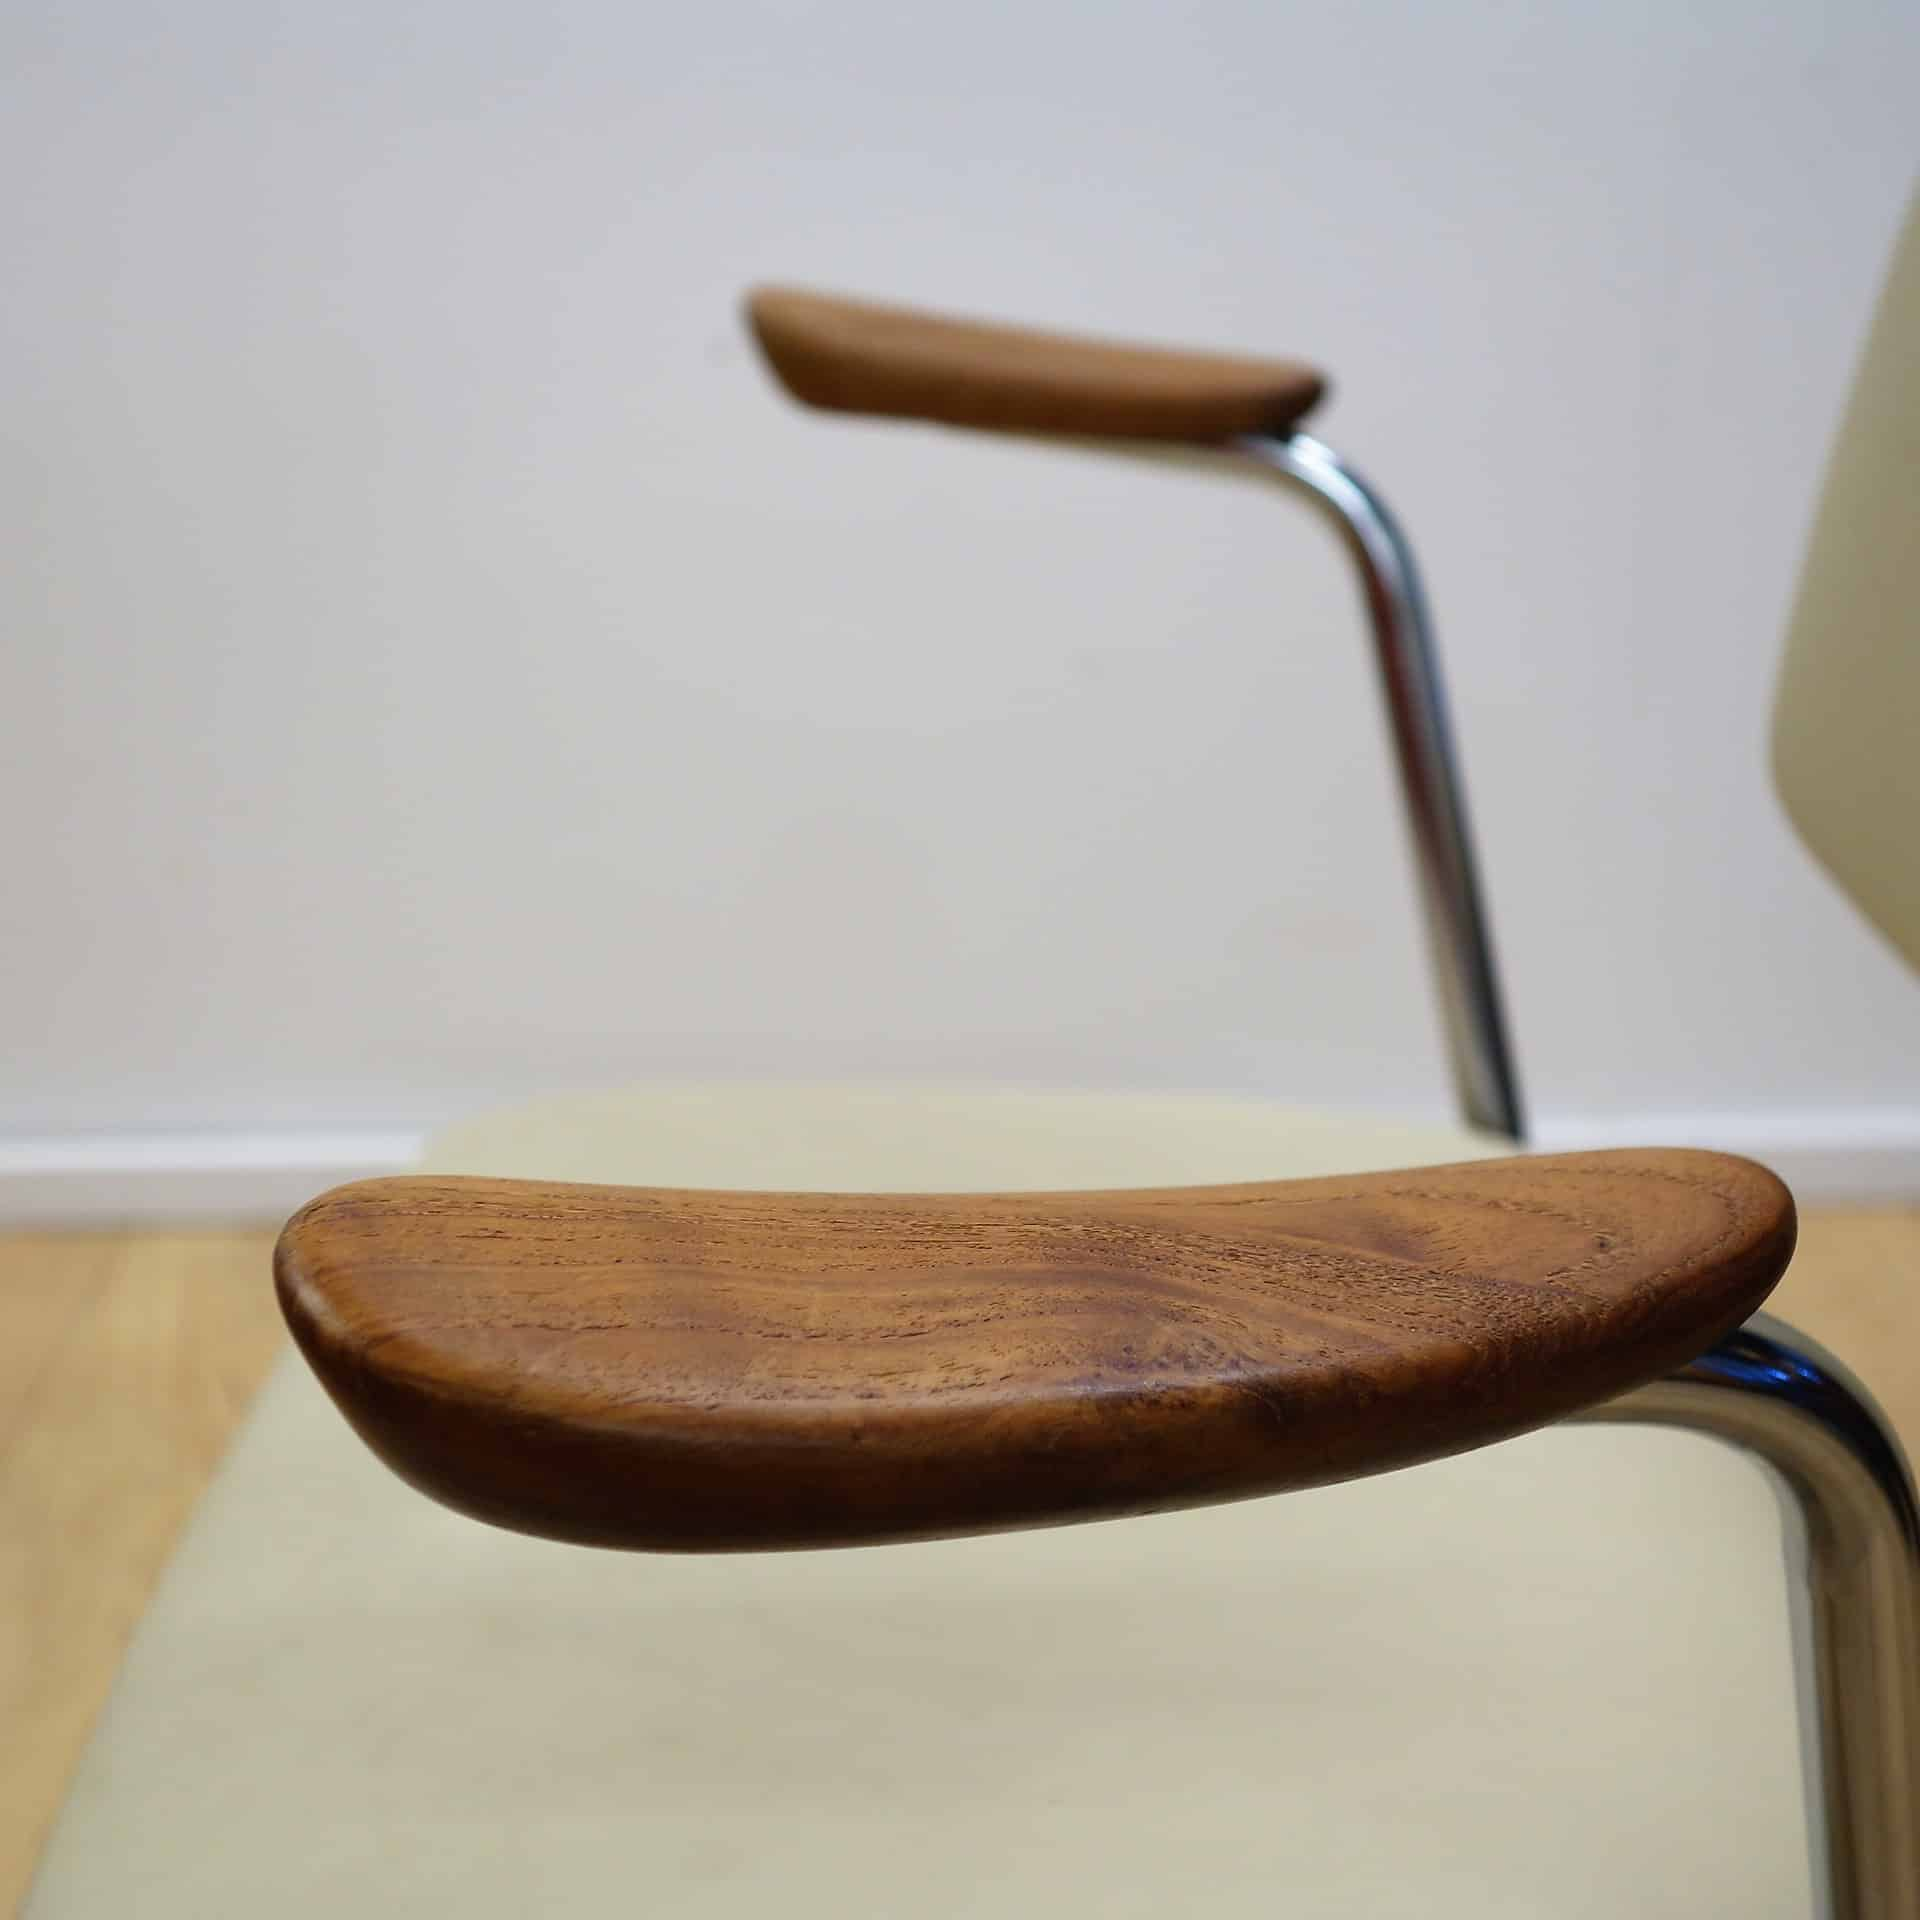 ergonomic chair norway ghost chairs south africa 1960s leather office by hag mark parrish